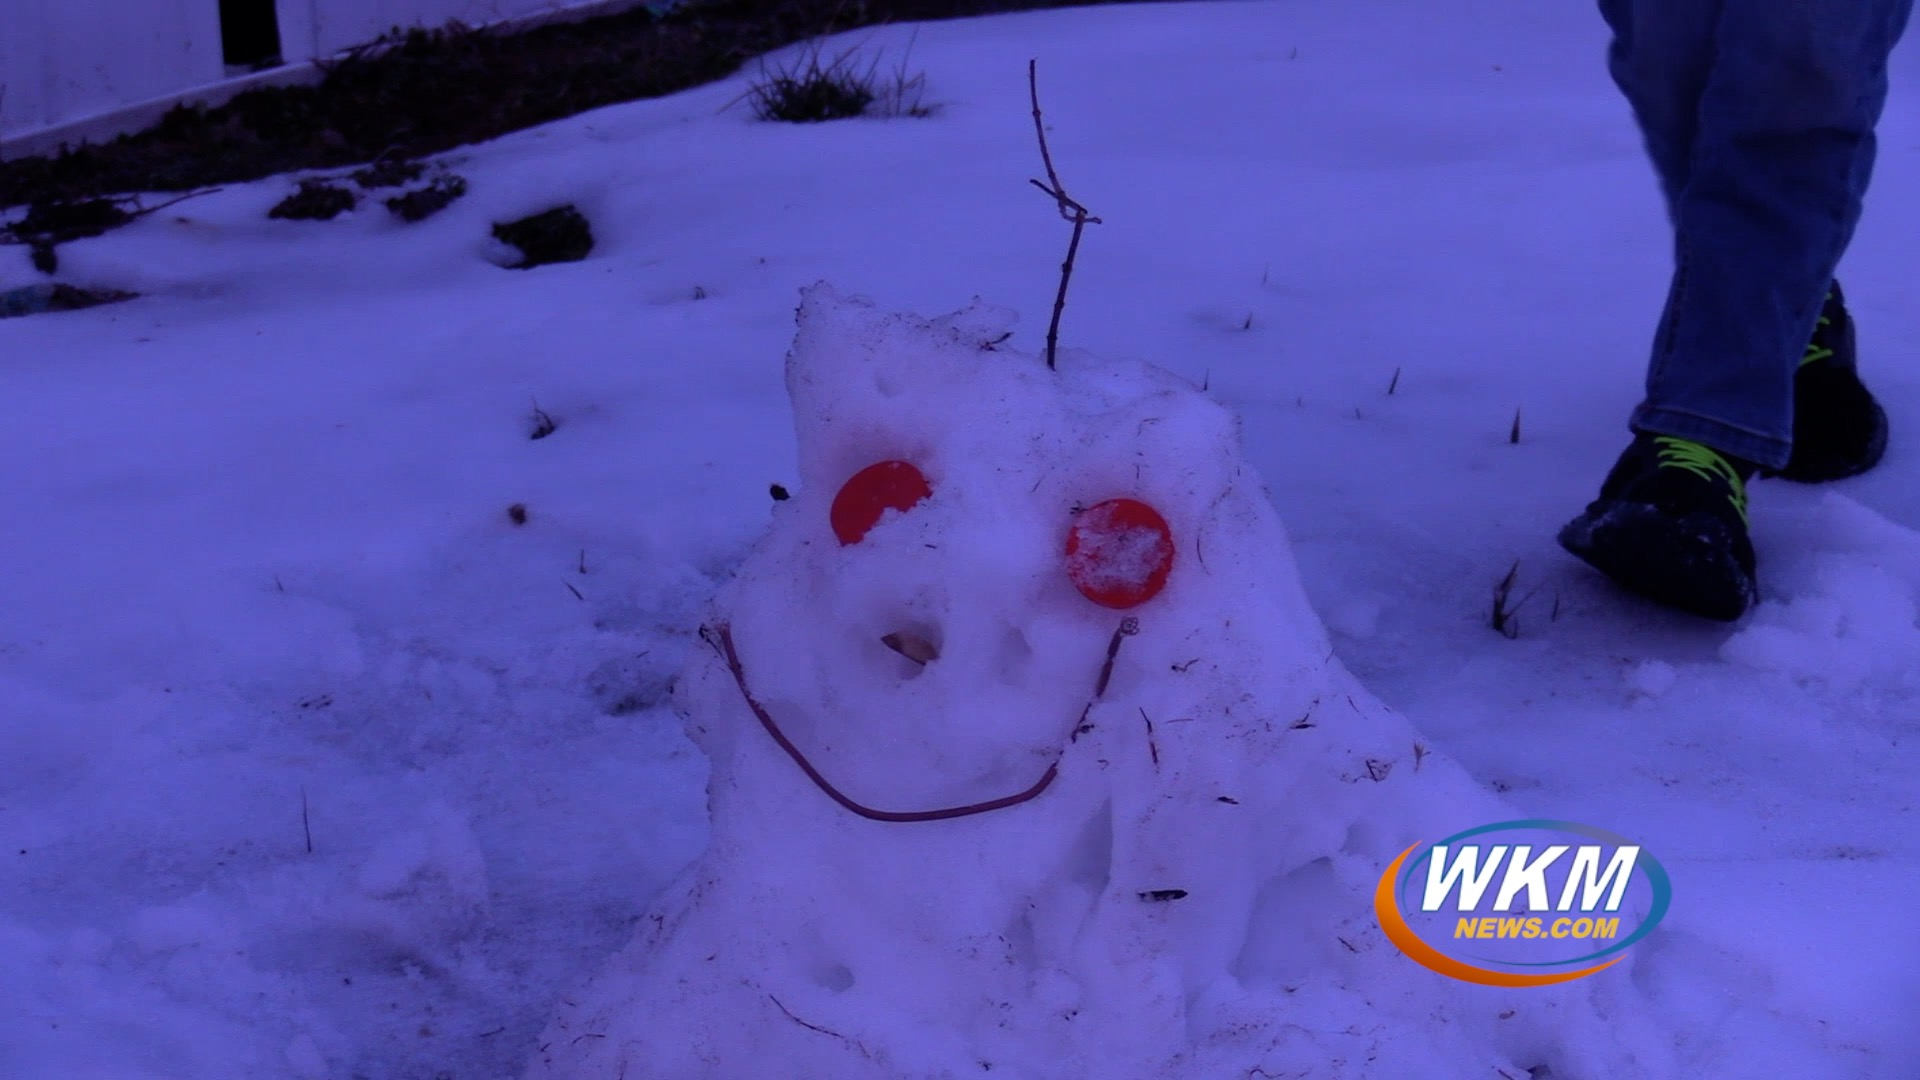 Snowman Building Tips From the Expert